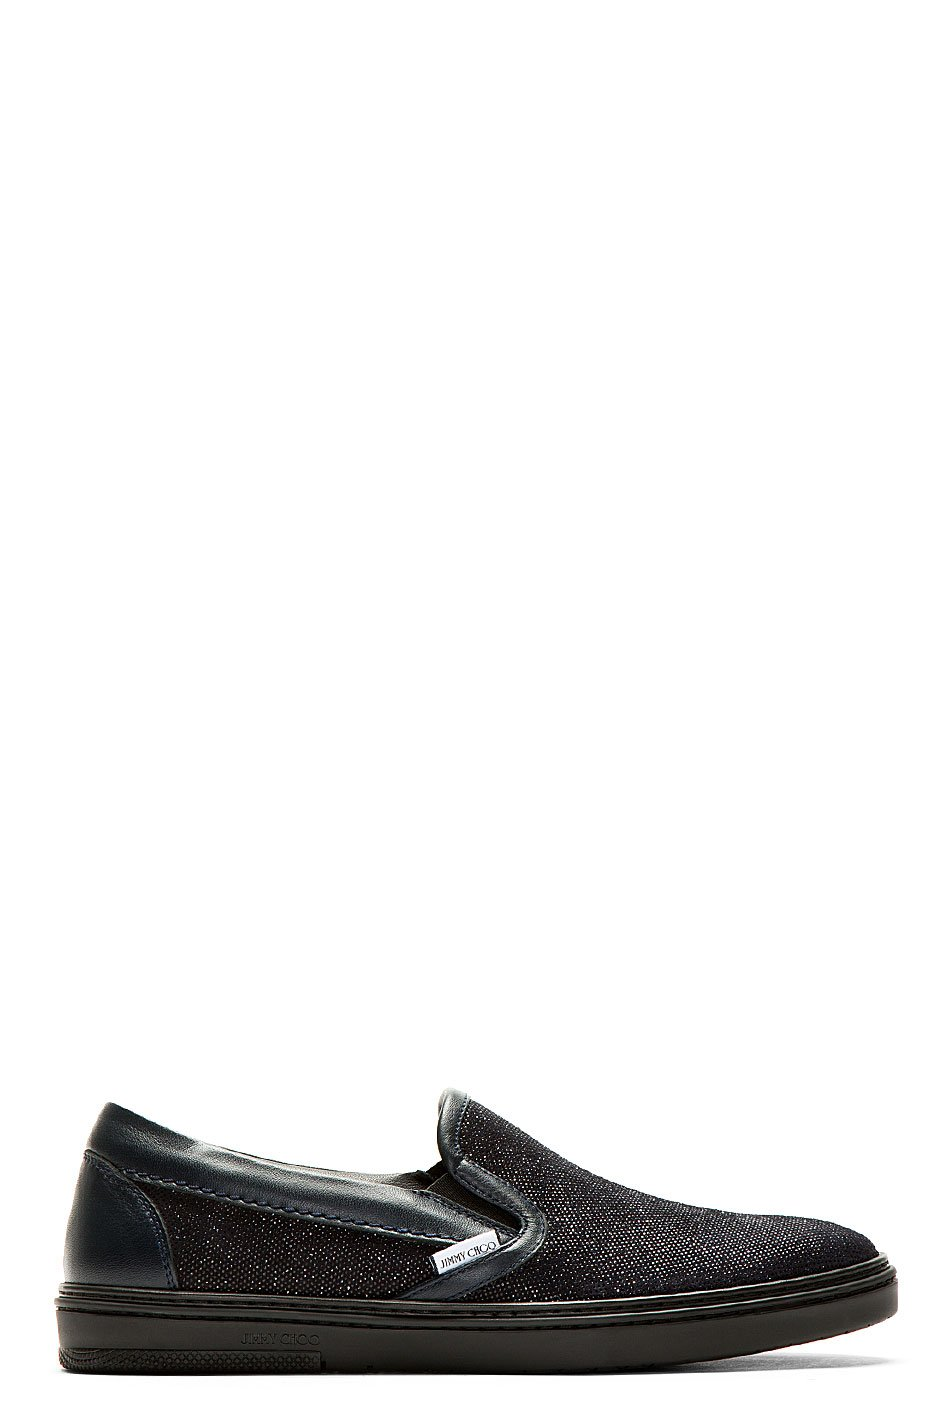 jimmy choo navy sparkle suede grove slip_on shoes